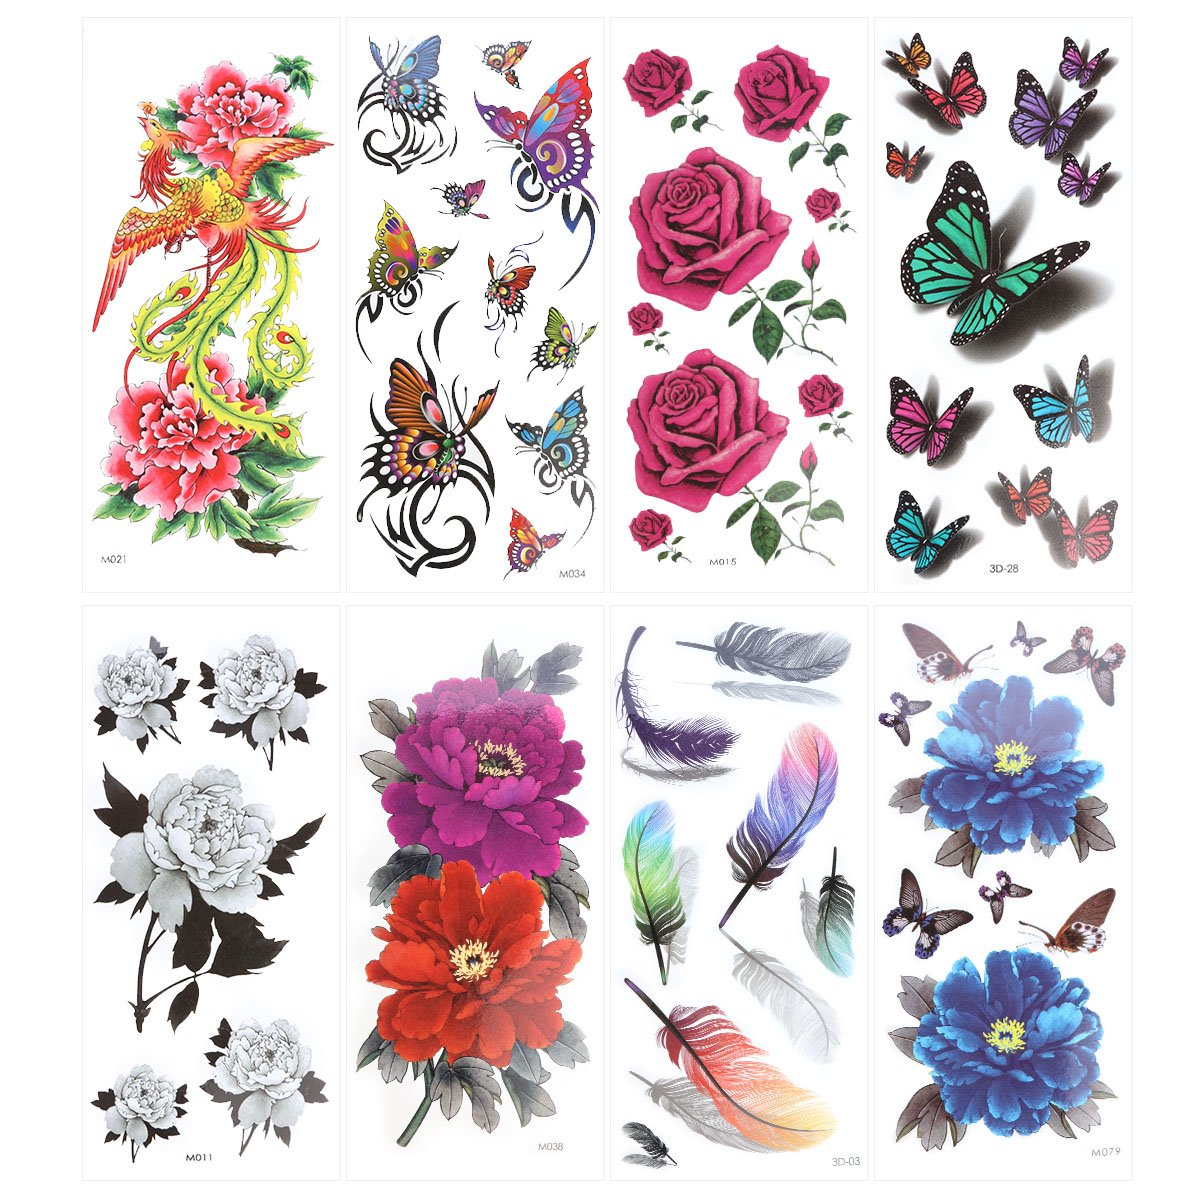 ROSENICE Temporary Tattoo 8 Sheets Tattoo Supplies Long Lasting for Women